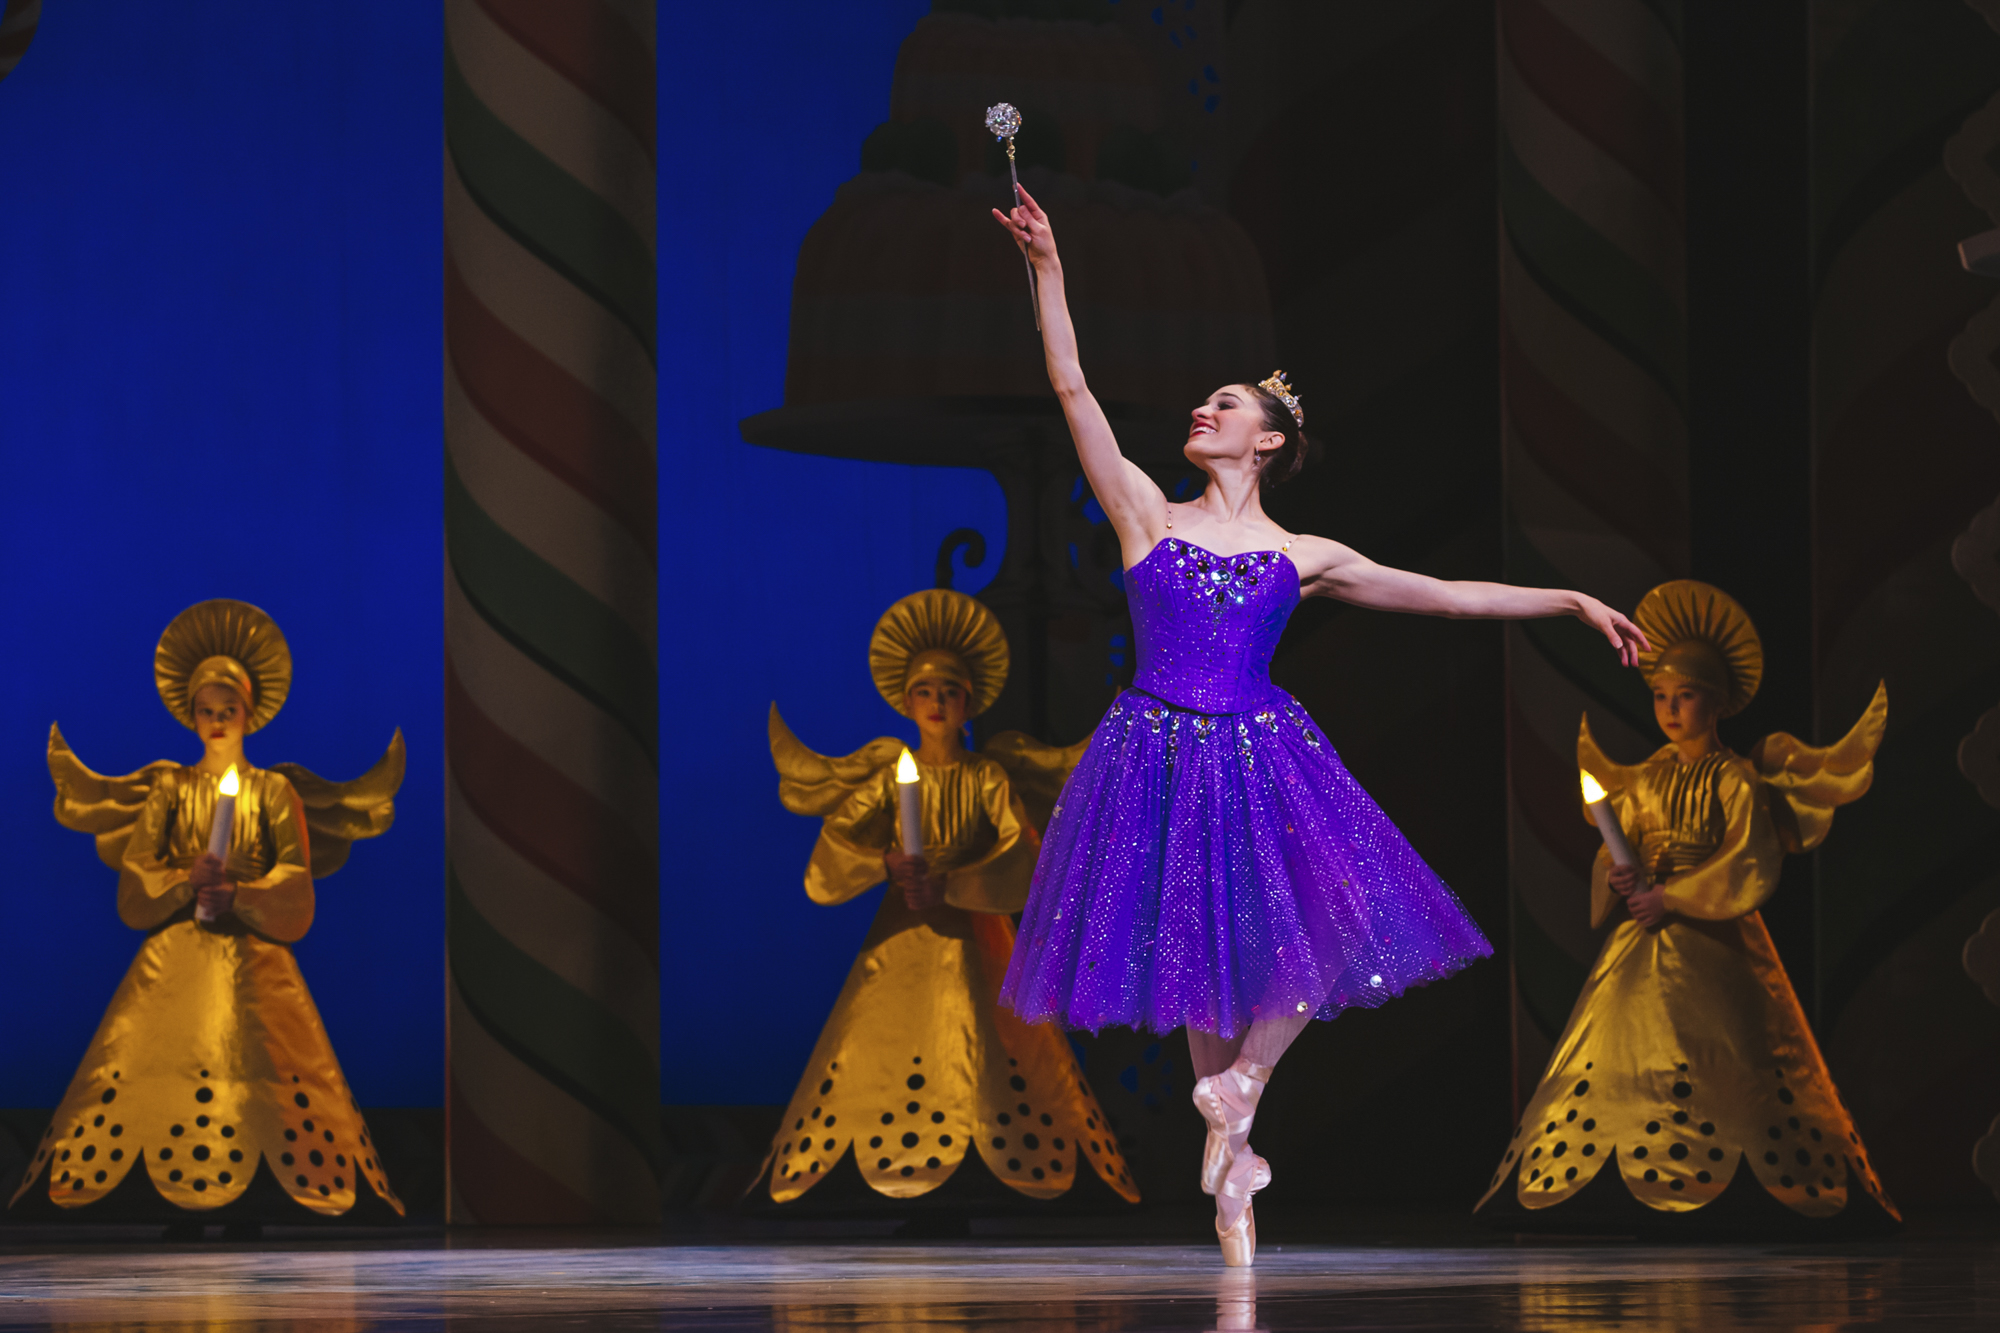 <p>It's not even really considered the holiday season until 'The Nutcracker' is playing at Pacific Northwest Ballet, right? We snuck in to the company's dress rehearsal at McCaw Hill to capture a taste of the magic that will be running November 23 - Dec. 28, 2019. Tickets at pnb.org. (Image: Sunita Martini / Seattle Refined)</p>